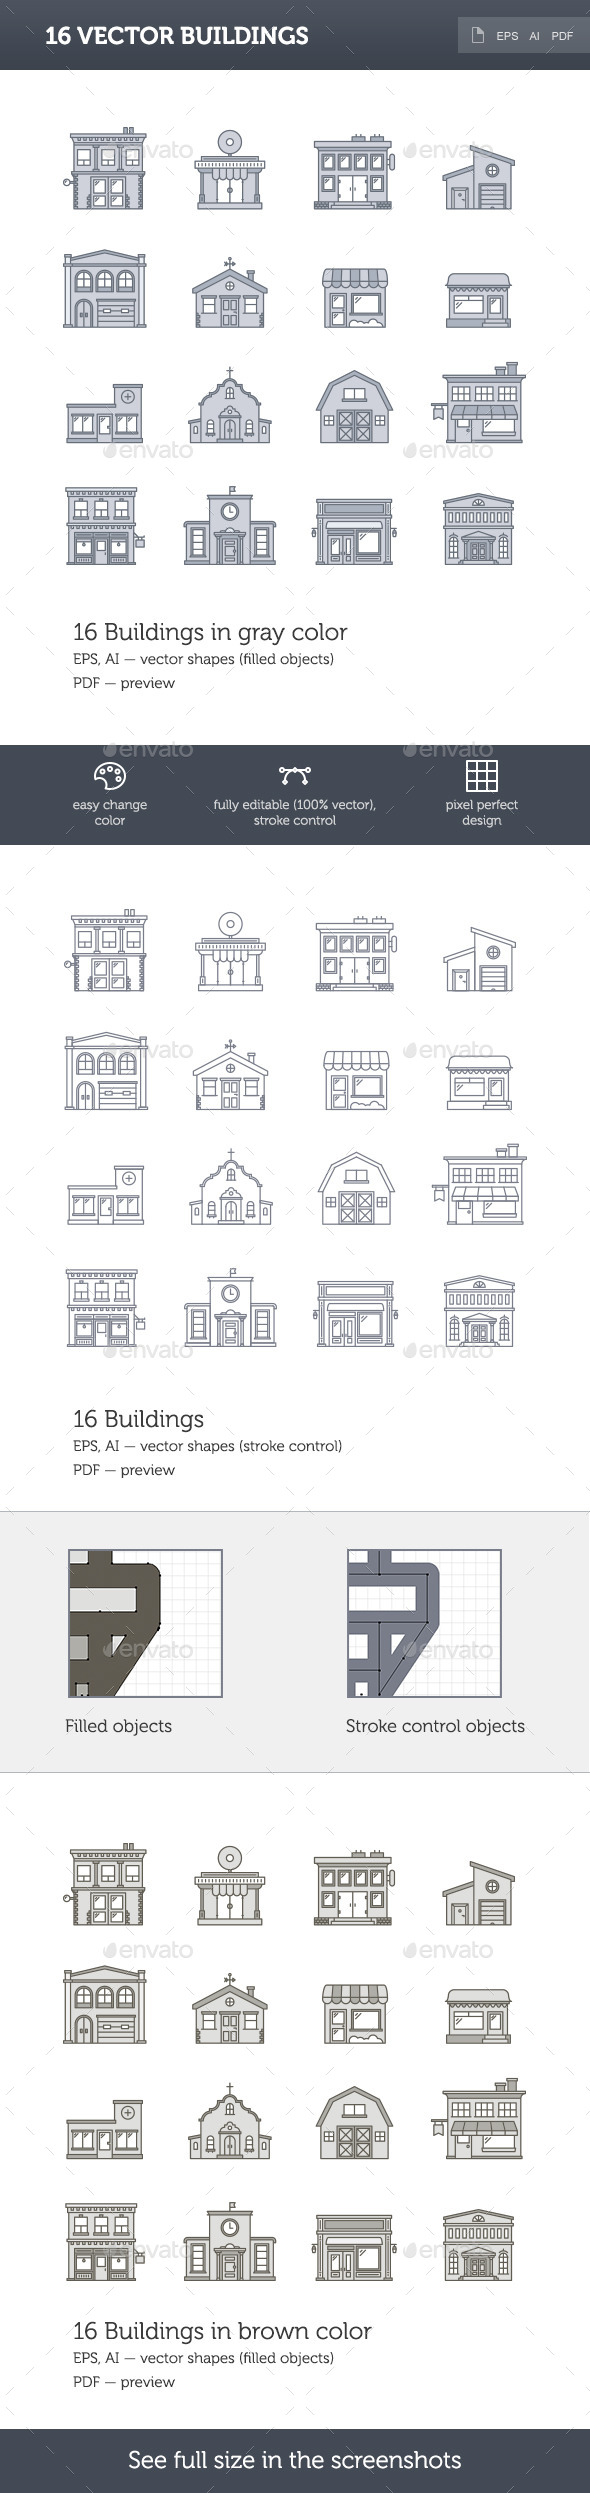 GraphicRiver 16 Vector Buildings 10117885